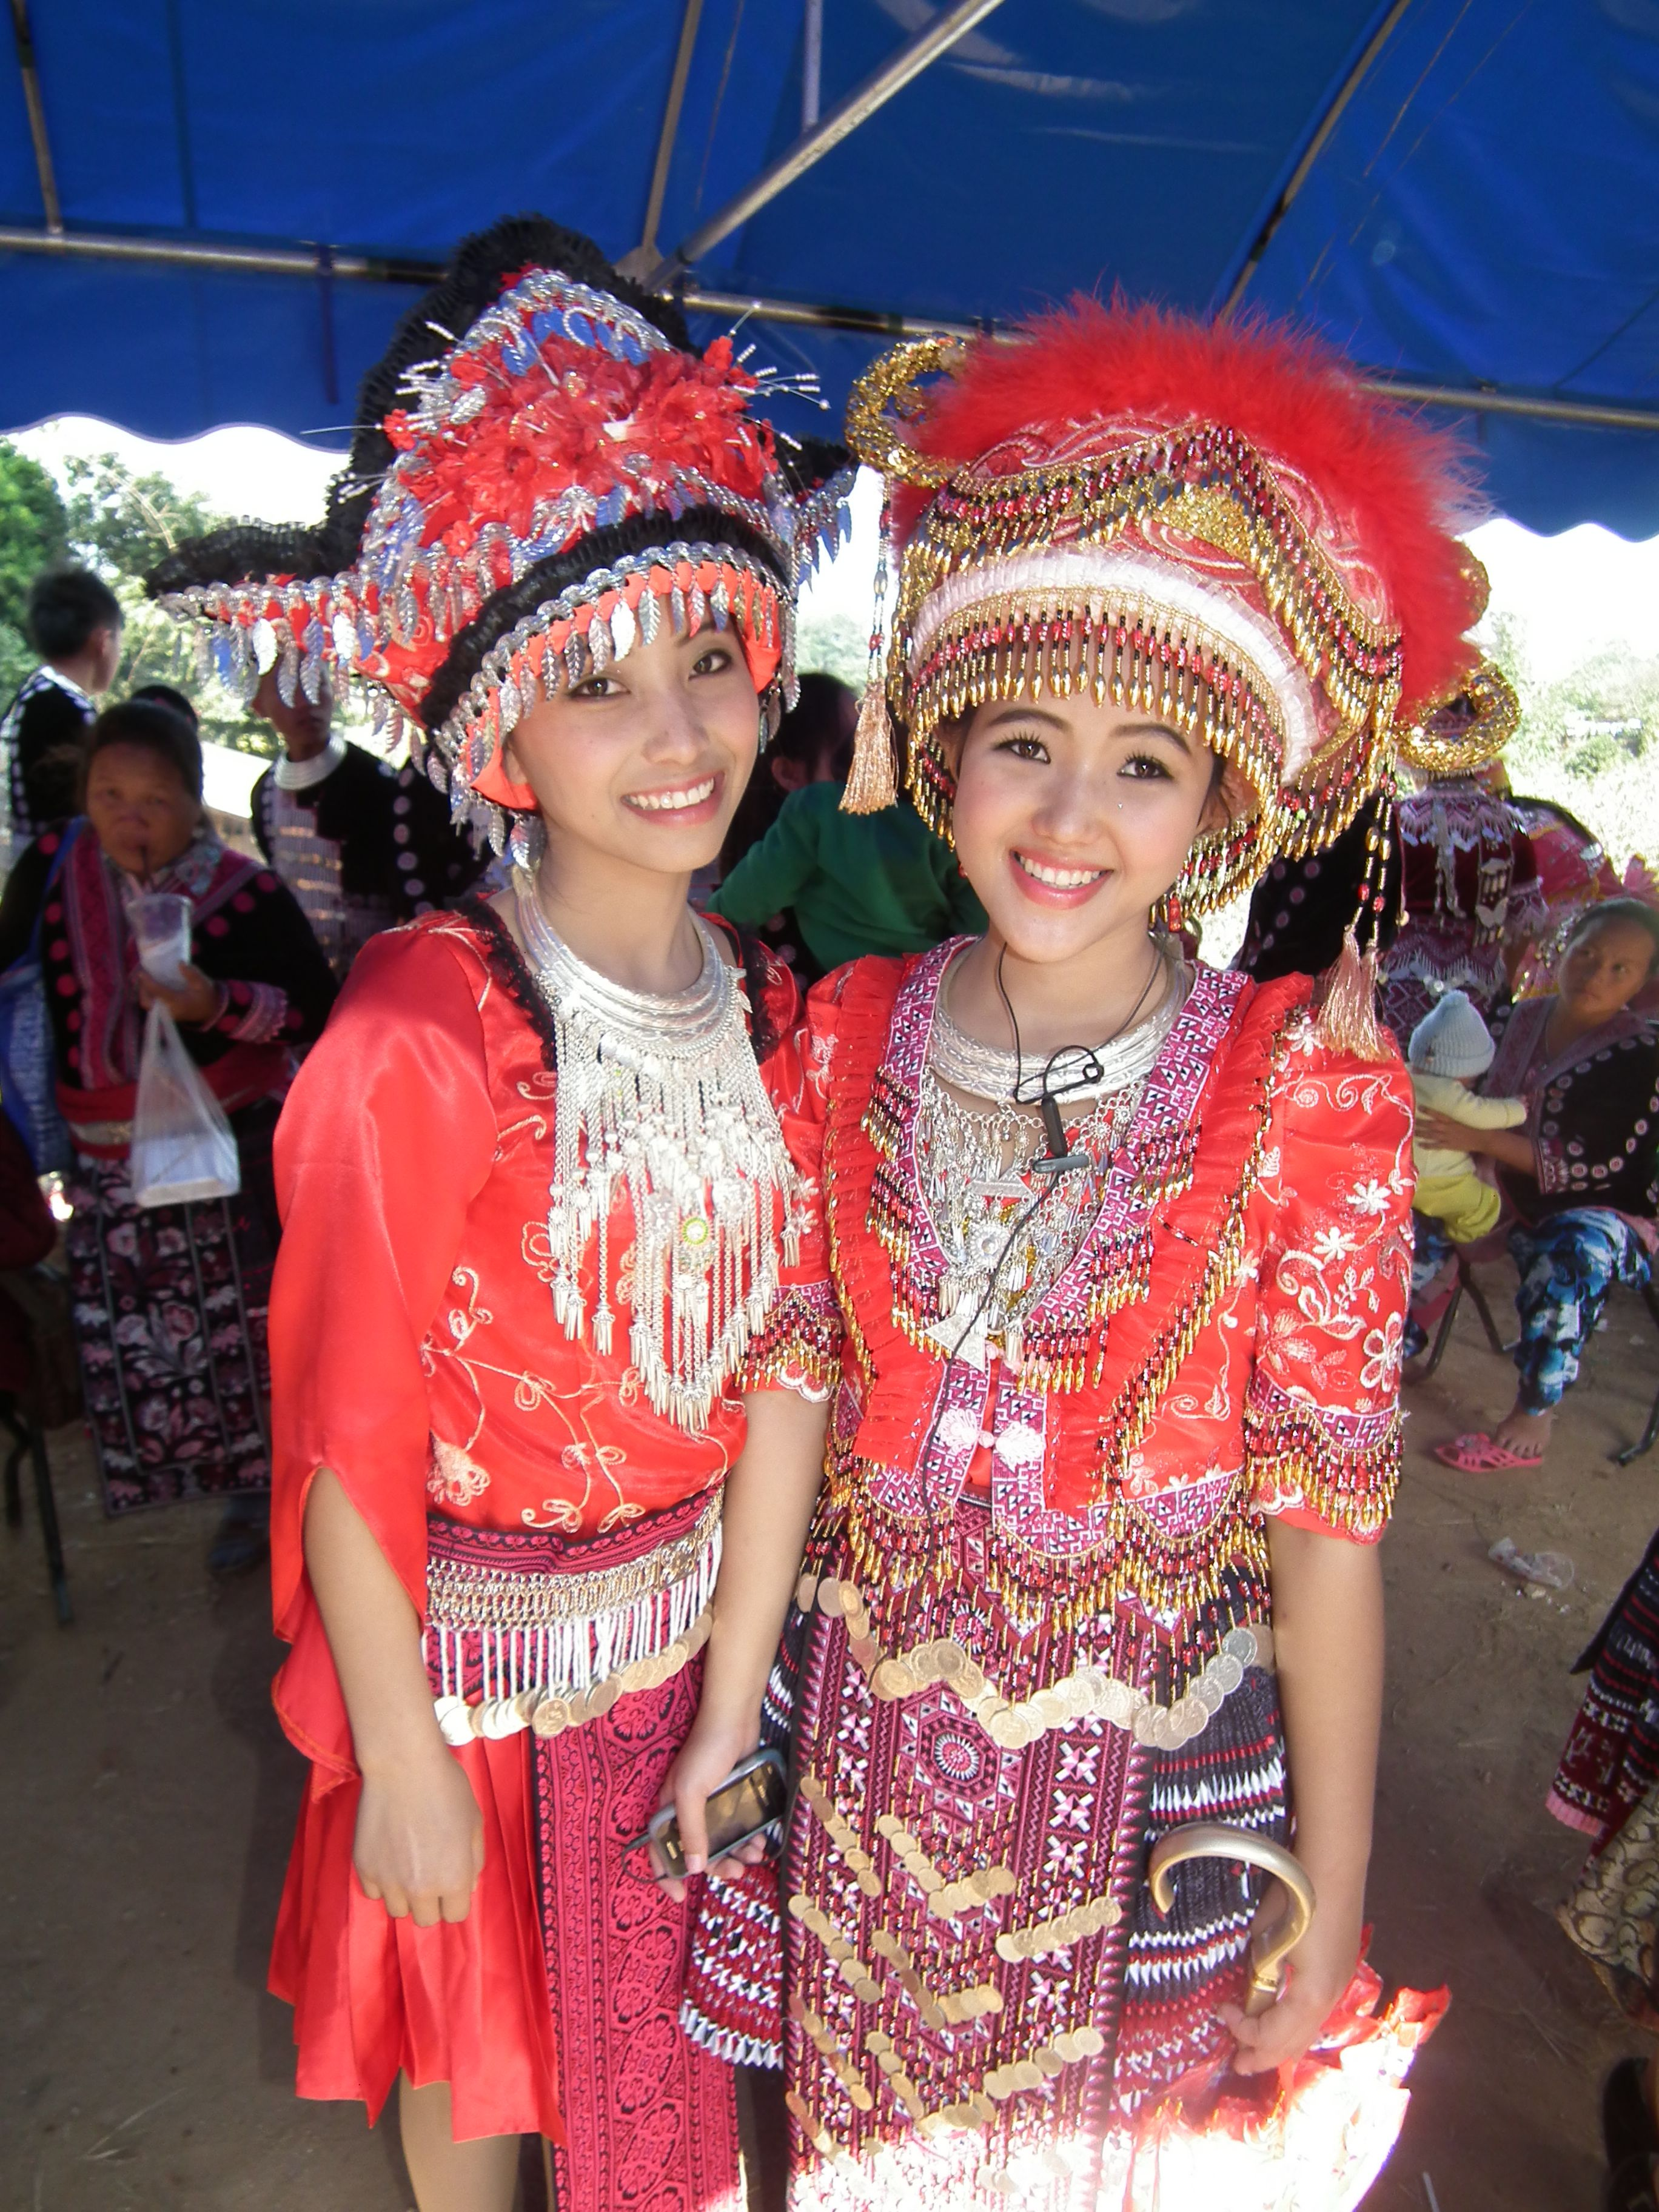 hmong dating traditions in korea